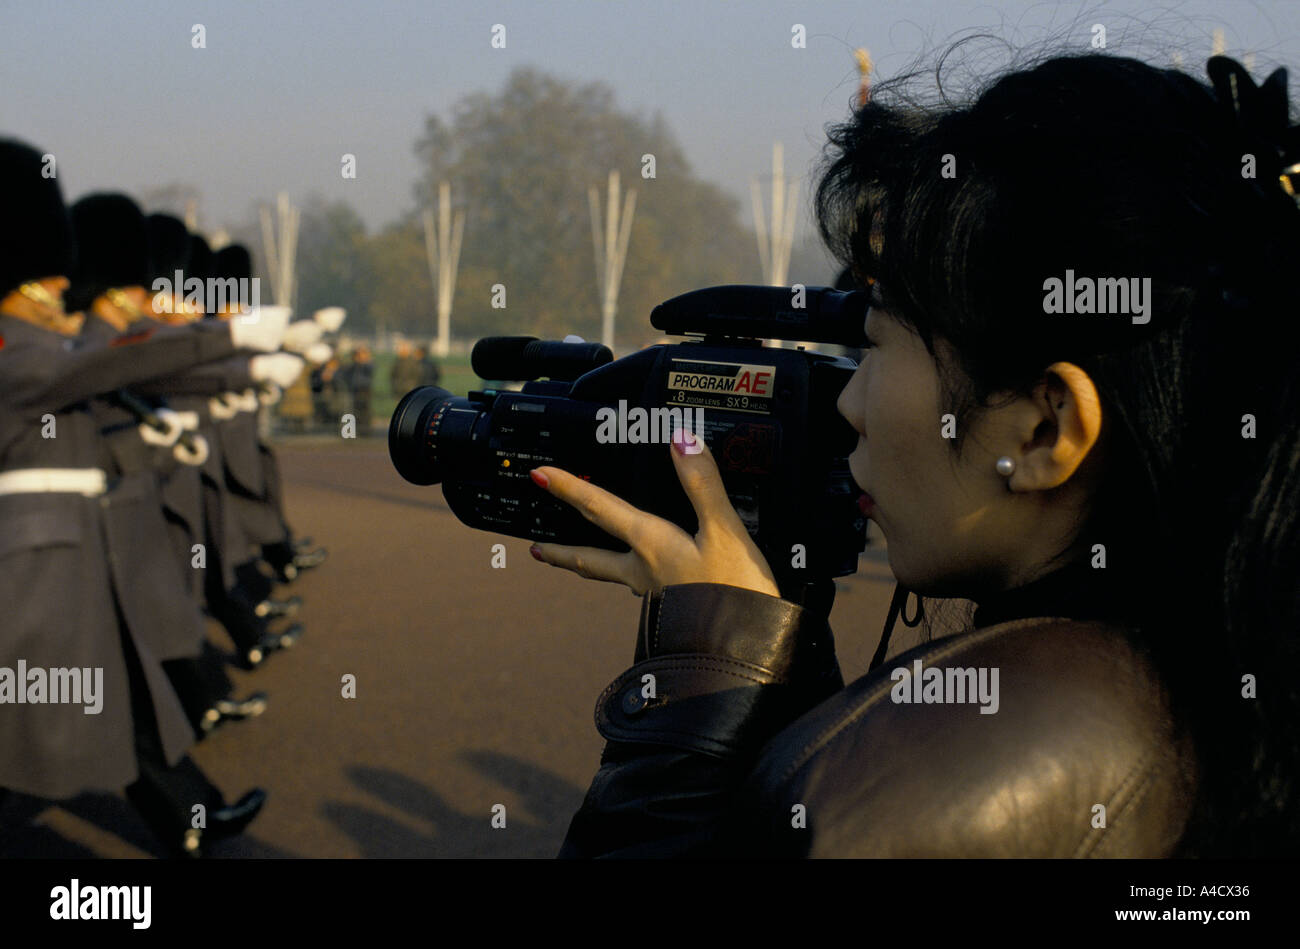 ORIENTAL WOMAN TOURIST FILMING THE ROYAL GUARDSMEN WITH BEARSKIN HAT OUTSIDE BUCKINGHAM PALACE, LONDON - Stock Image